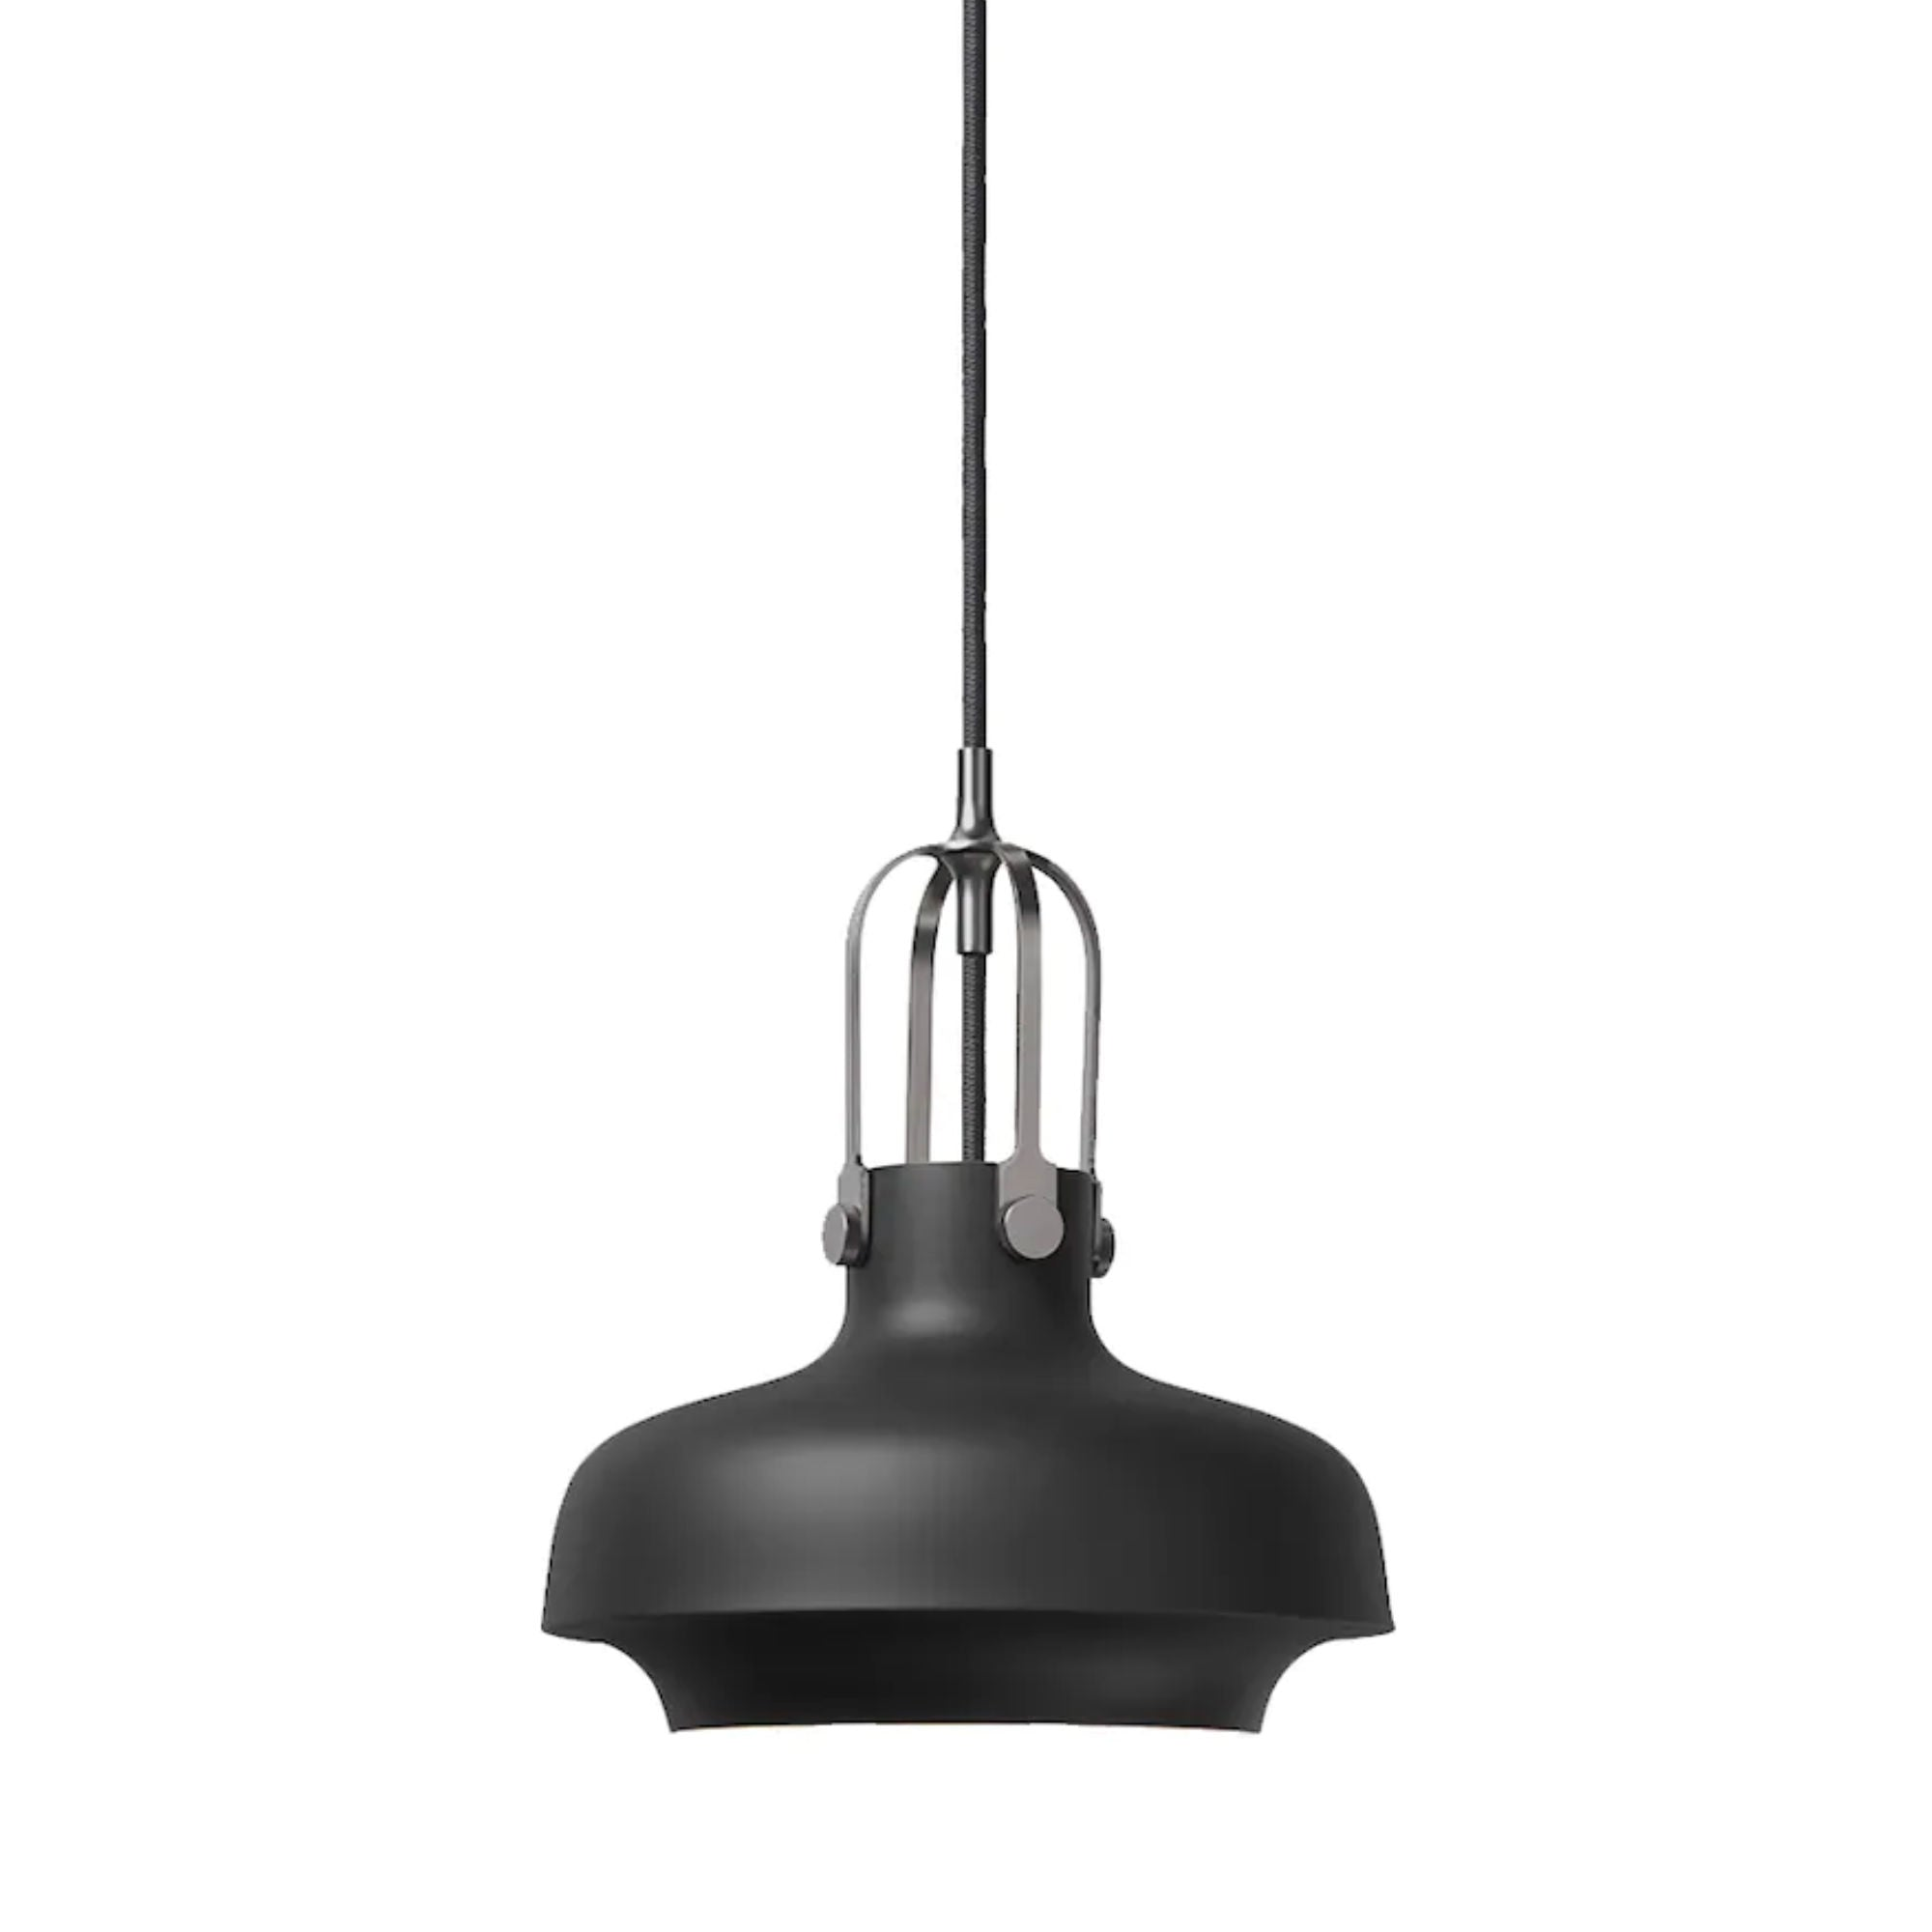 &Tradition SC6 Copenhagen pendant light, matt black - silver suspension